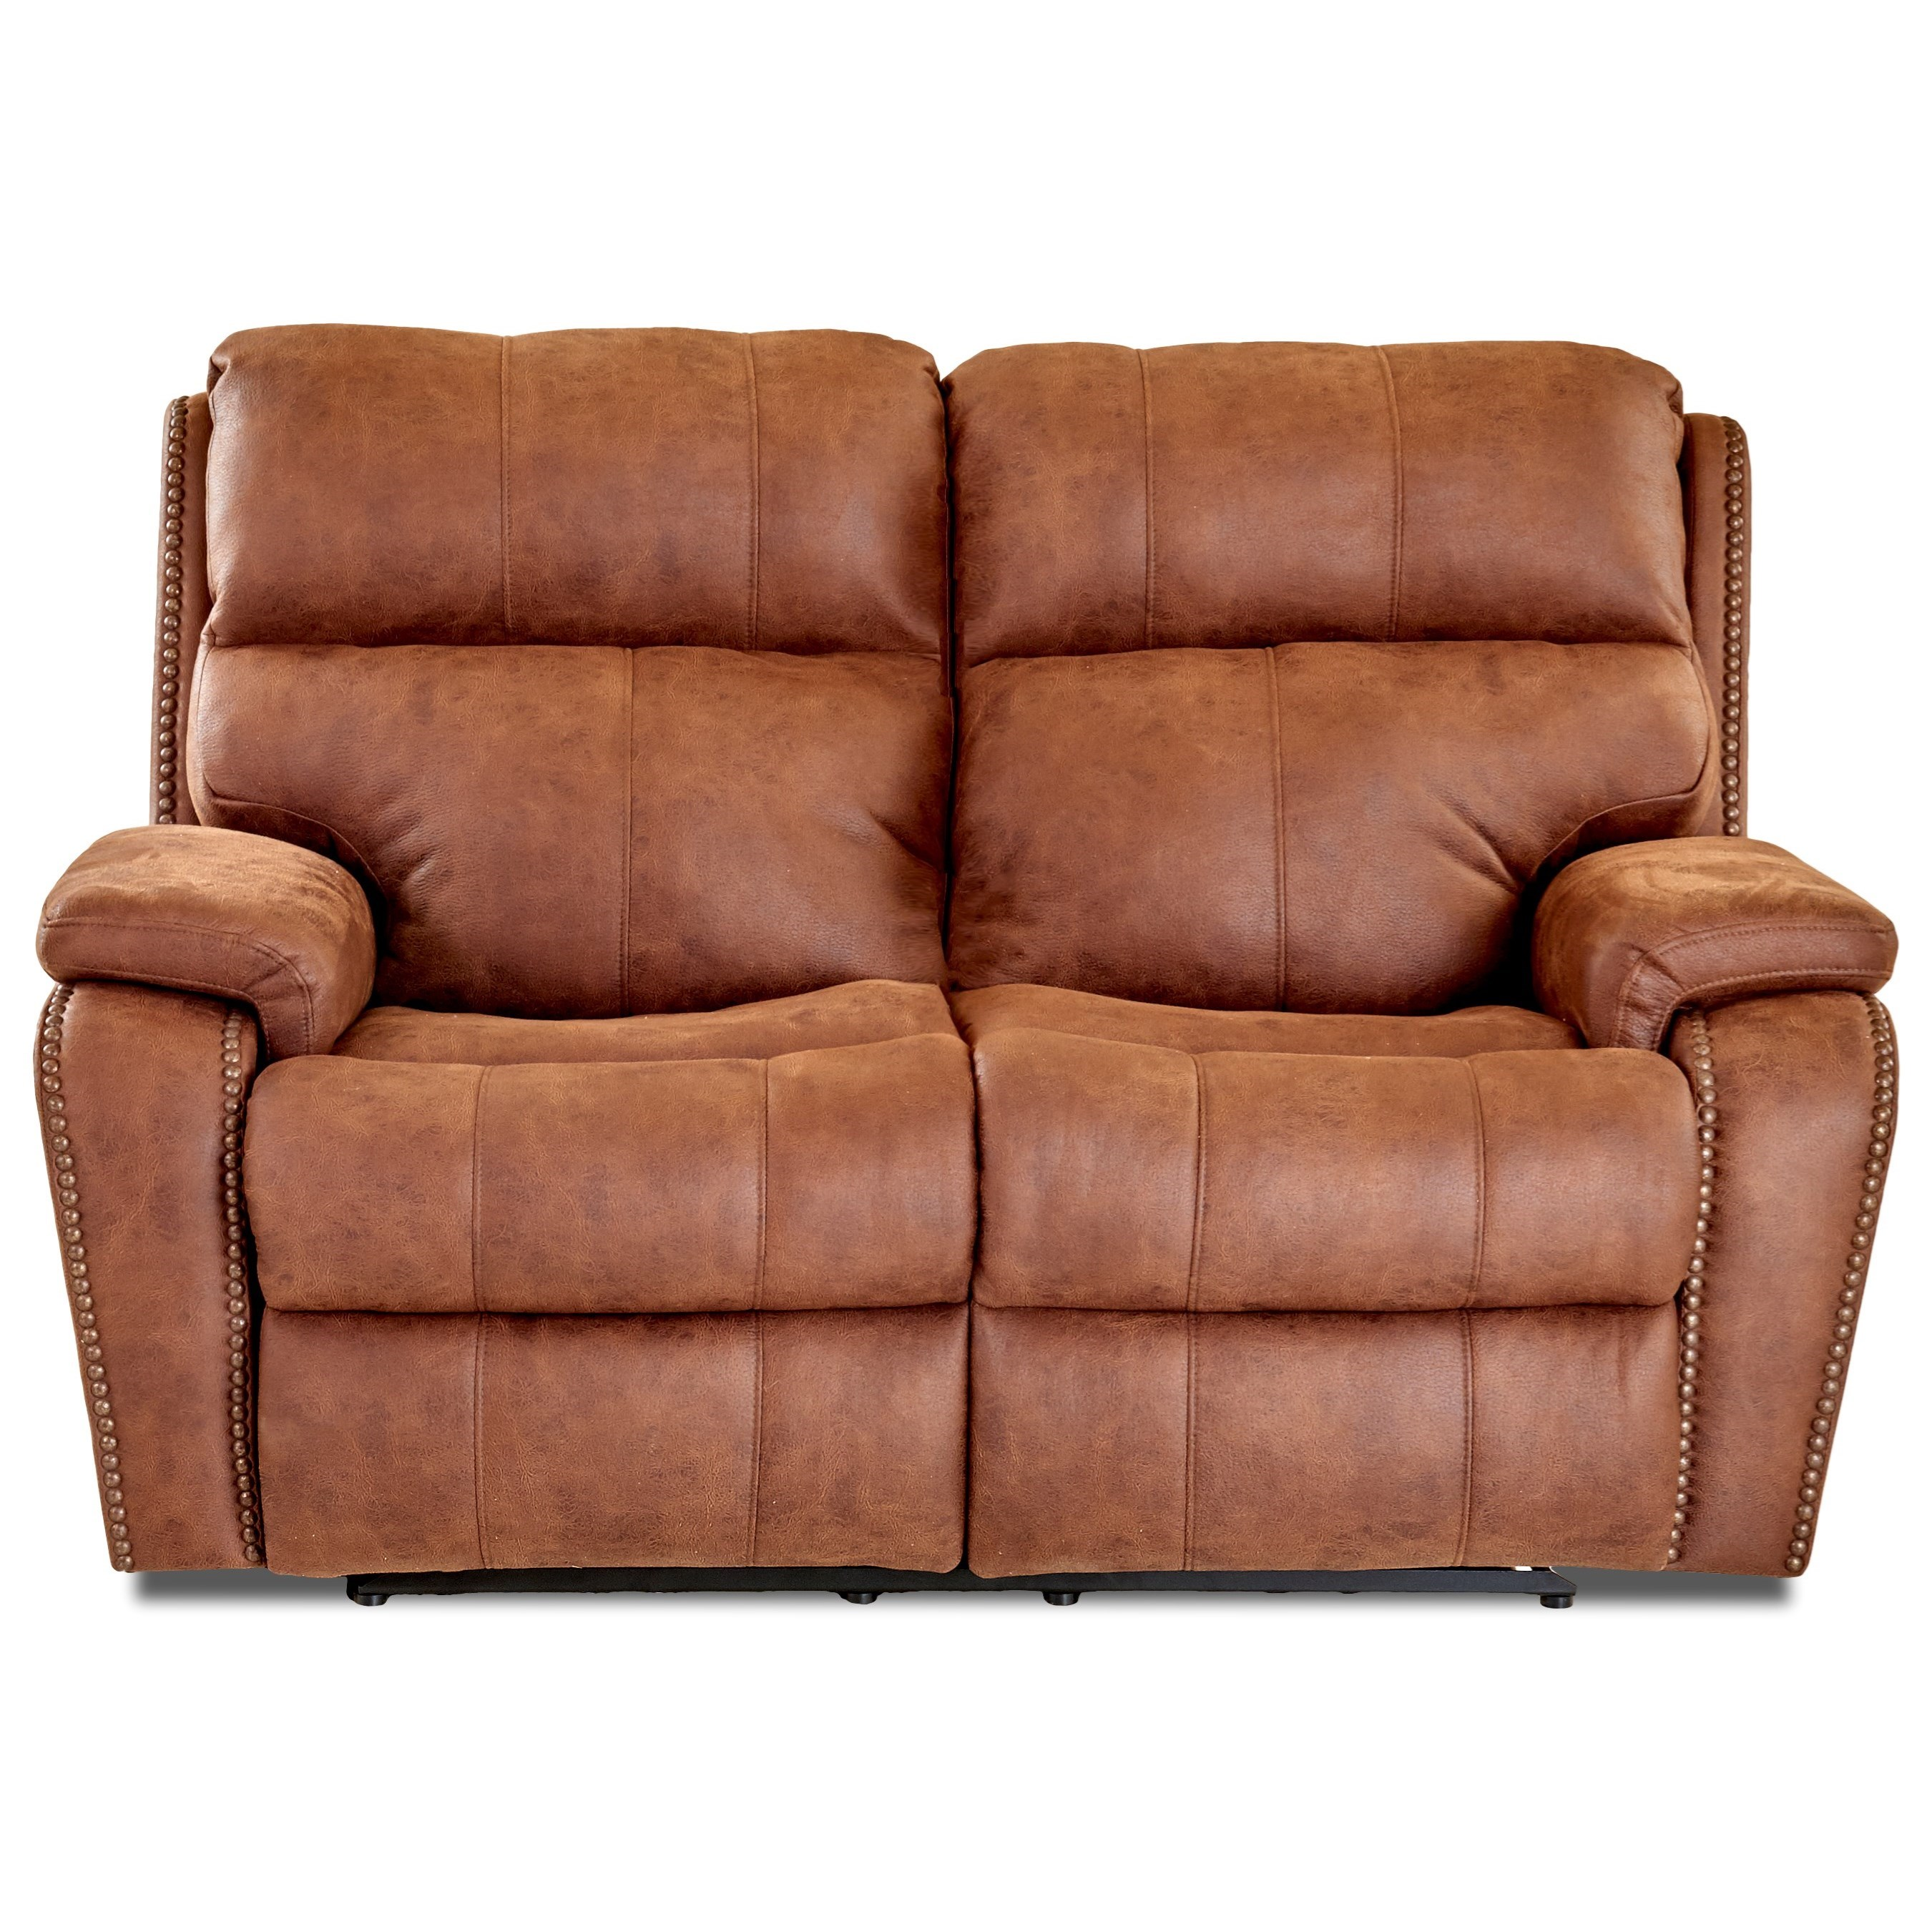 Reclining Loveseat w/ Nails